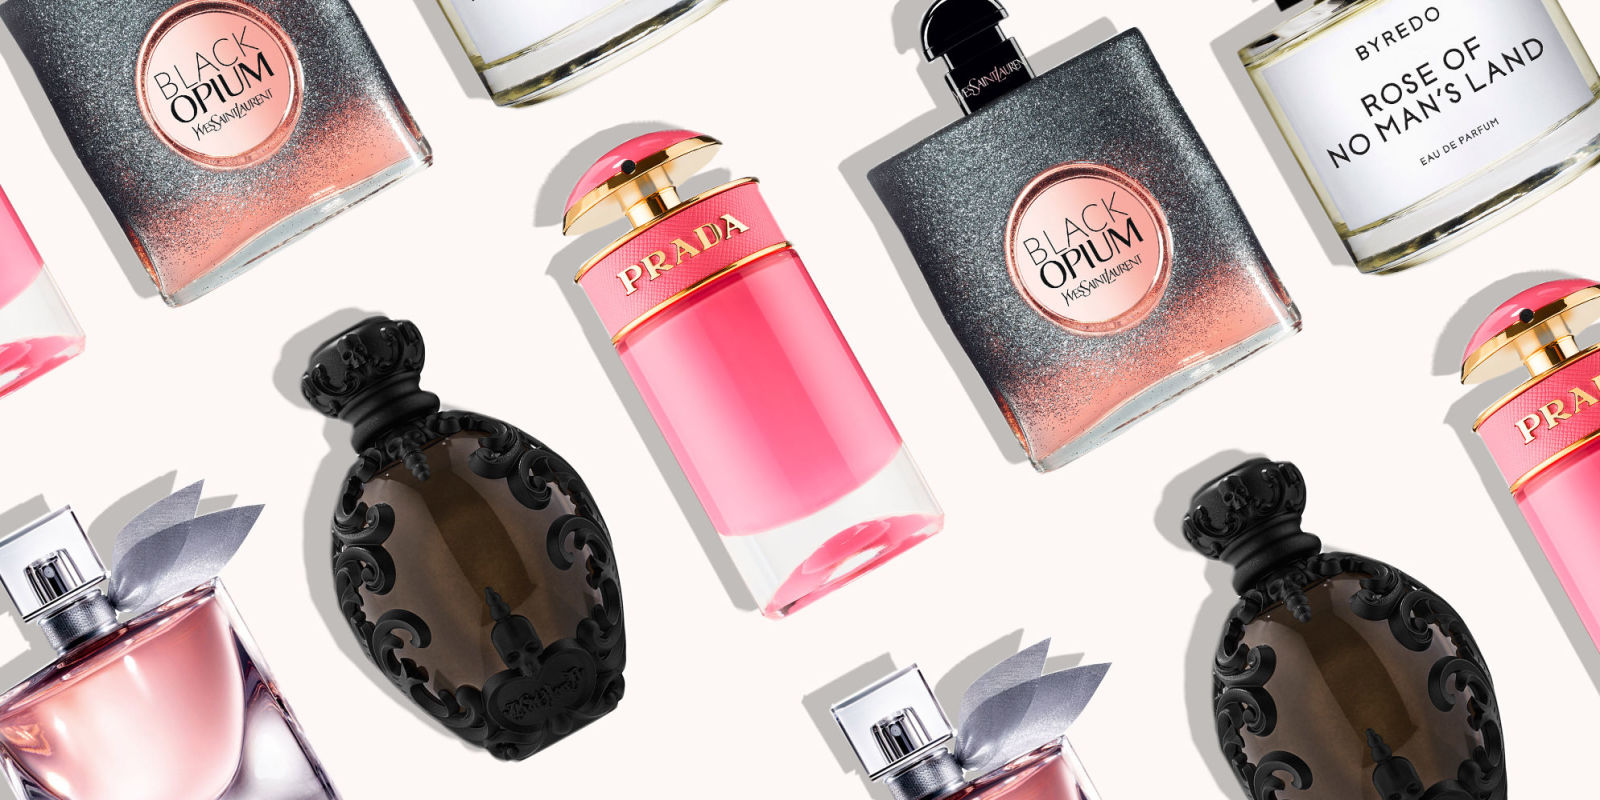 10 Best Perfumes For Women In 2018 Sexy Fragrances And